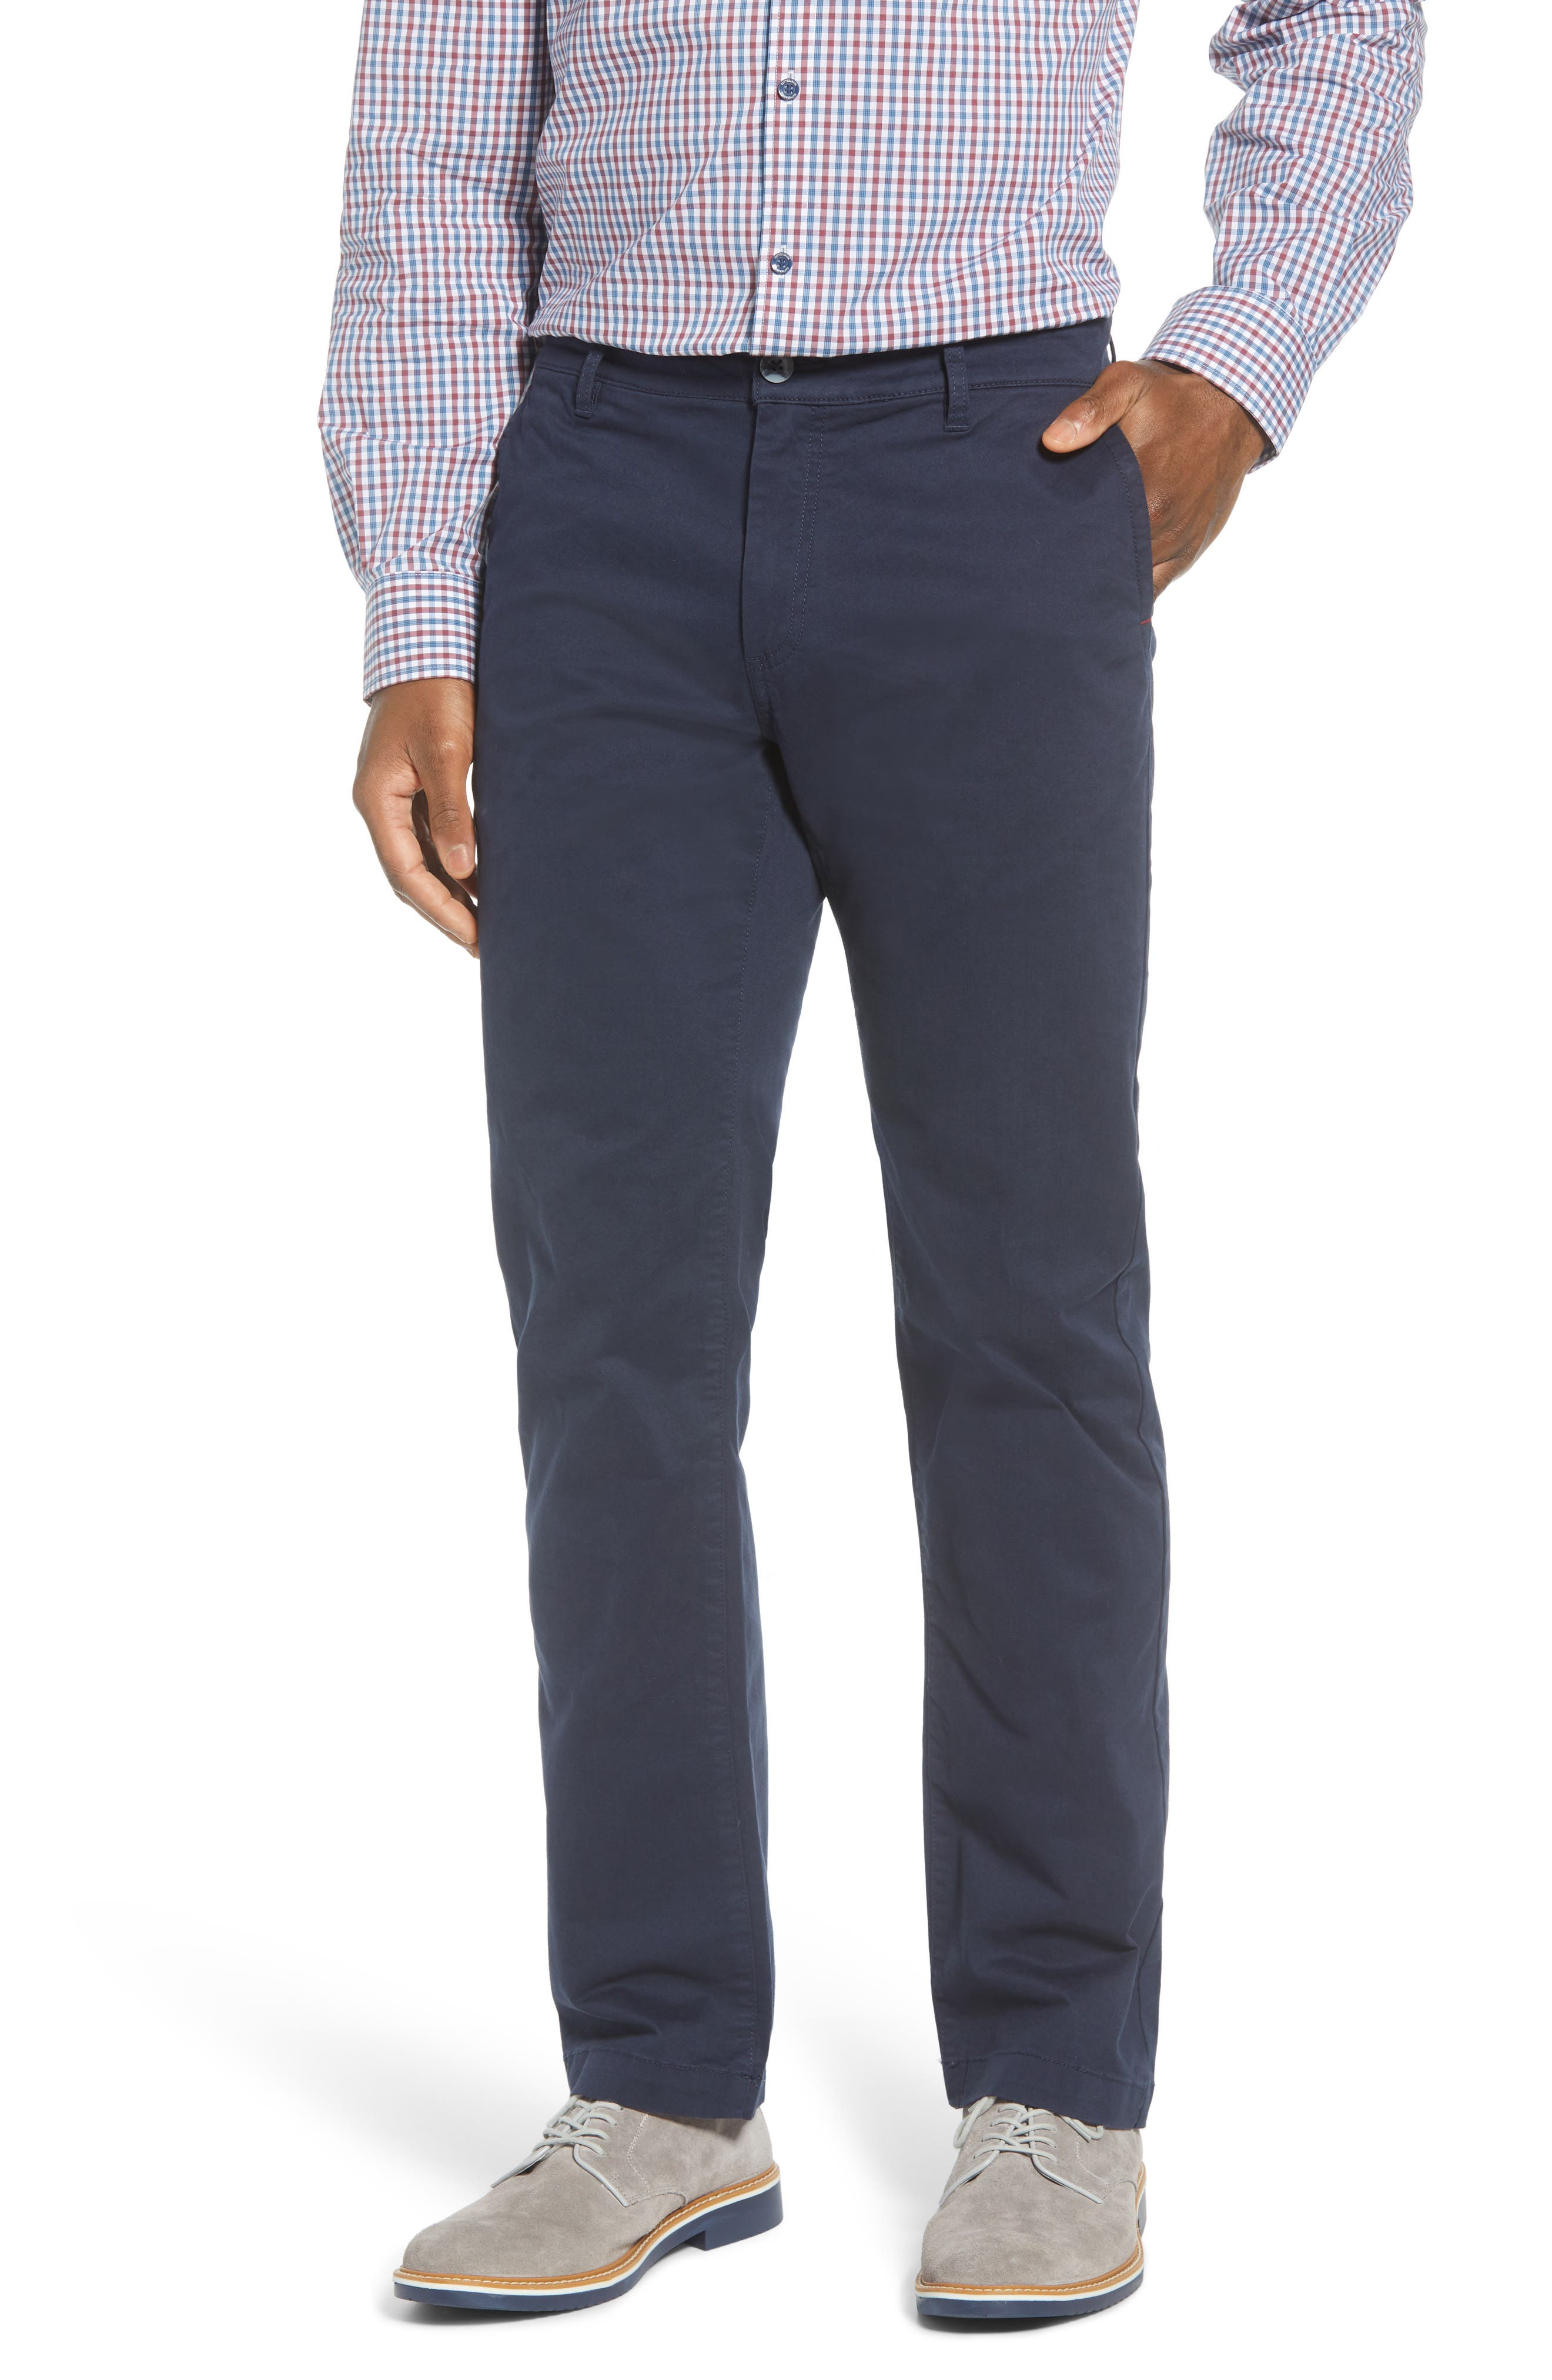 Garment-washed stretch cotton means a flexible feel in versatile chinos with casual appeal. Style Name: Cutter & Buck Voyager Stretch Cotton Chino Pants. Style Number: 6054937. Available in stores.